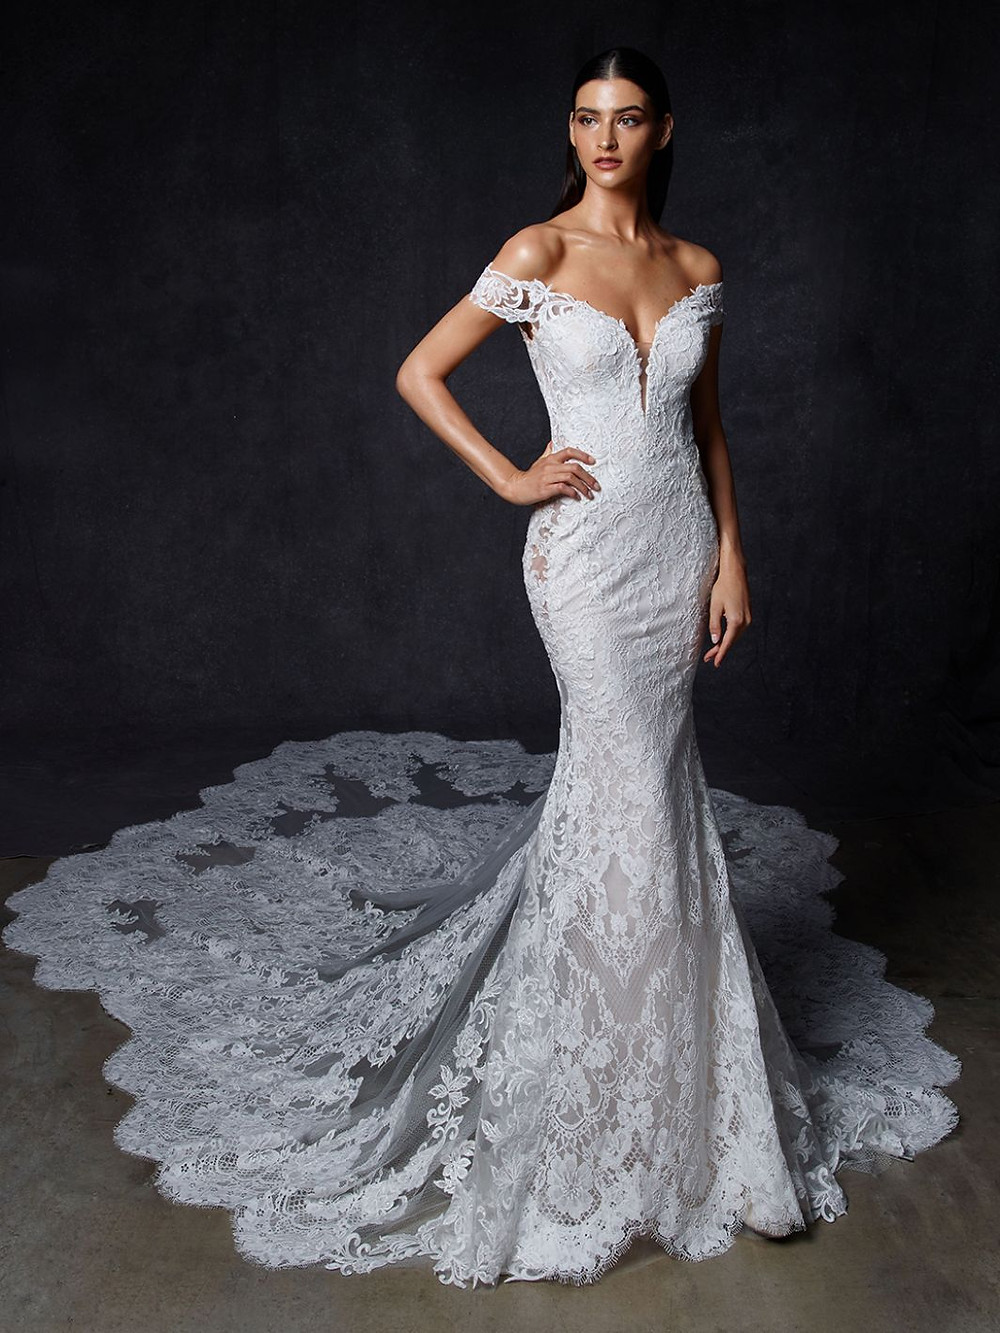 An Enzoani off the shoulder, lace mermaid wedding dress with a long train